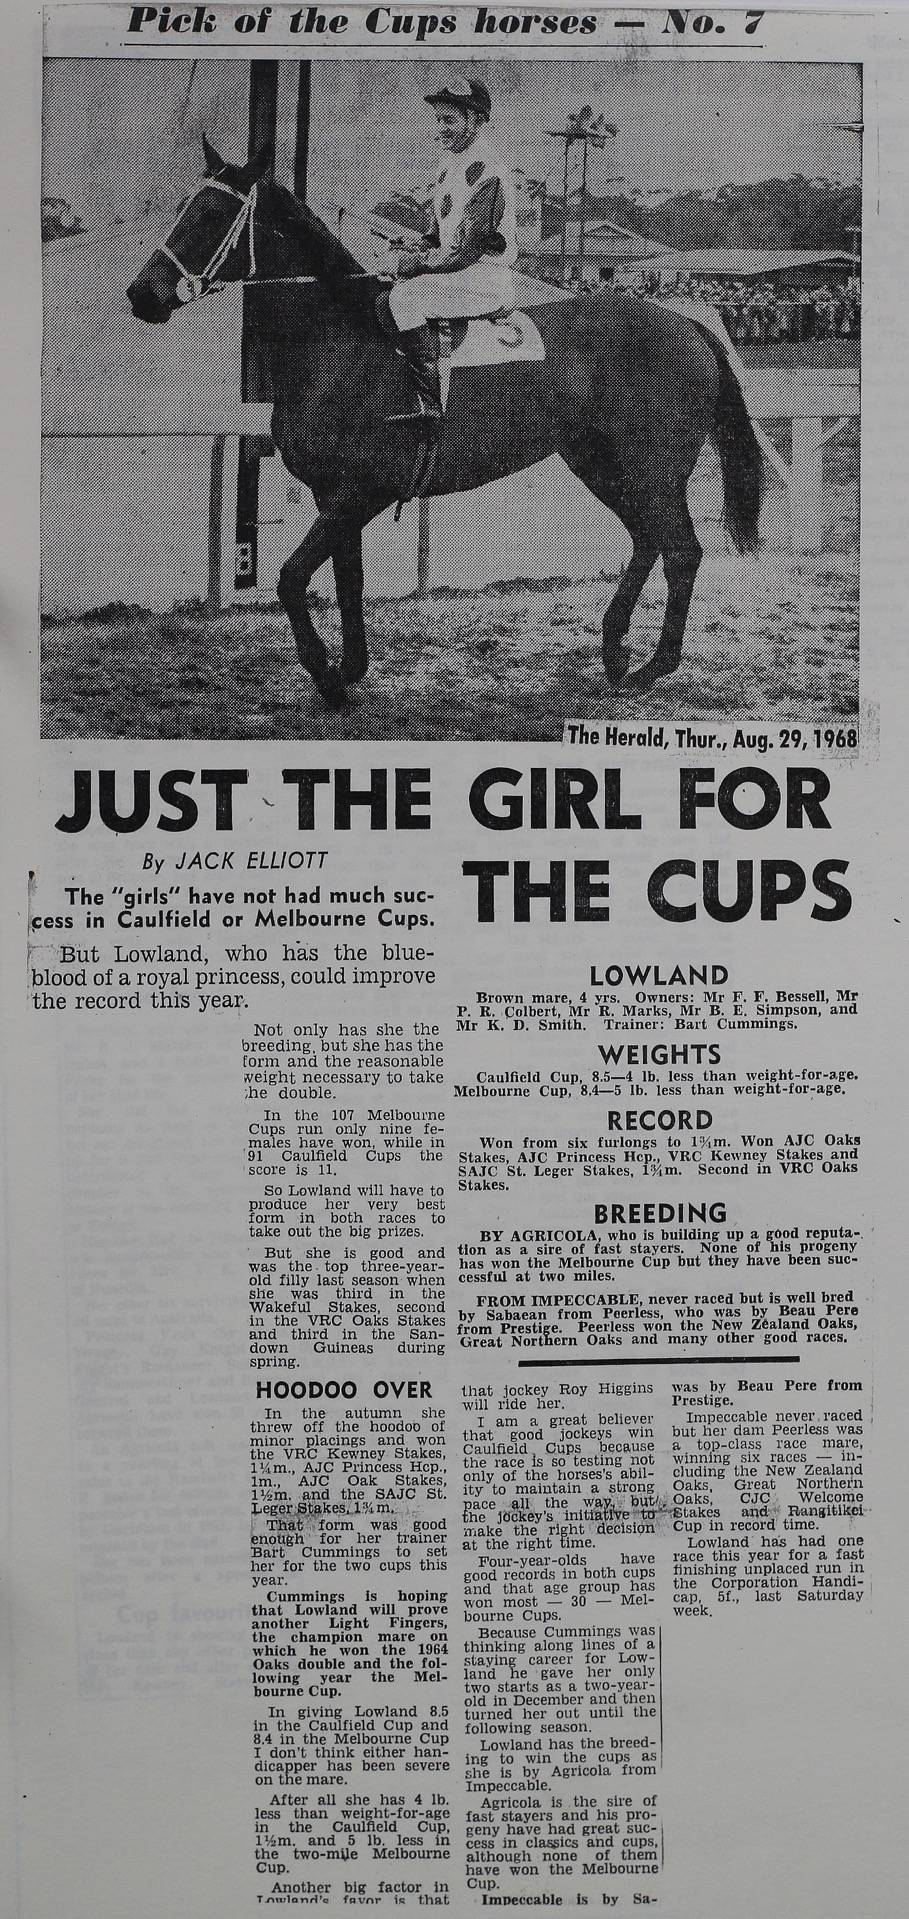 Just the girl for the cups